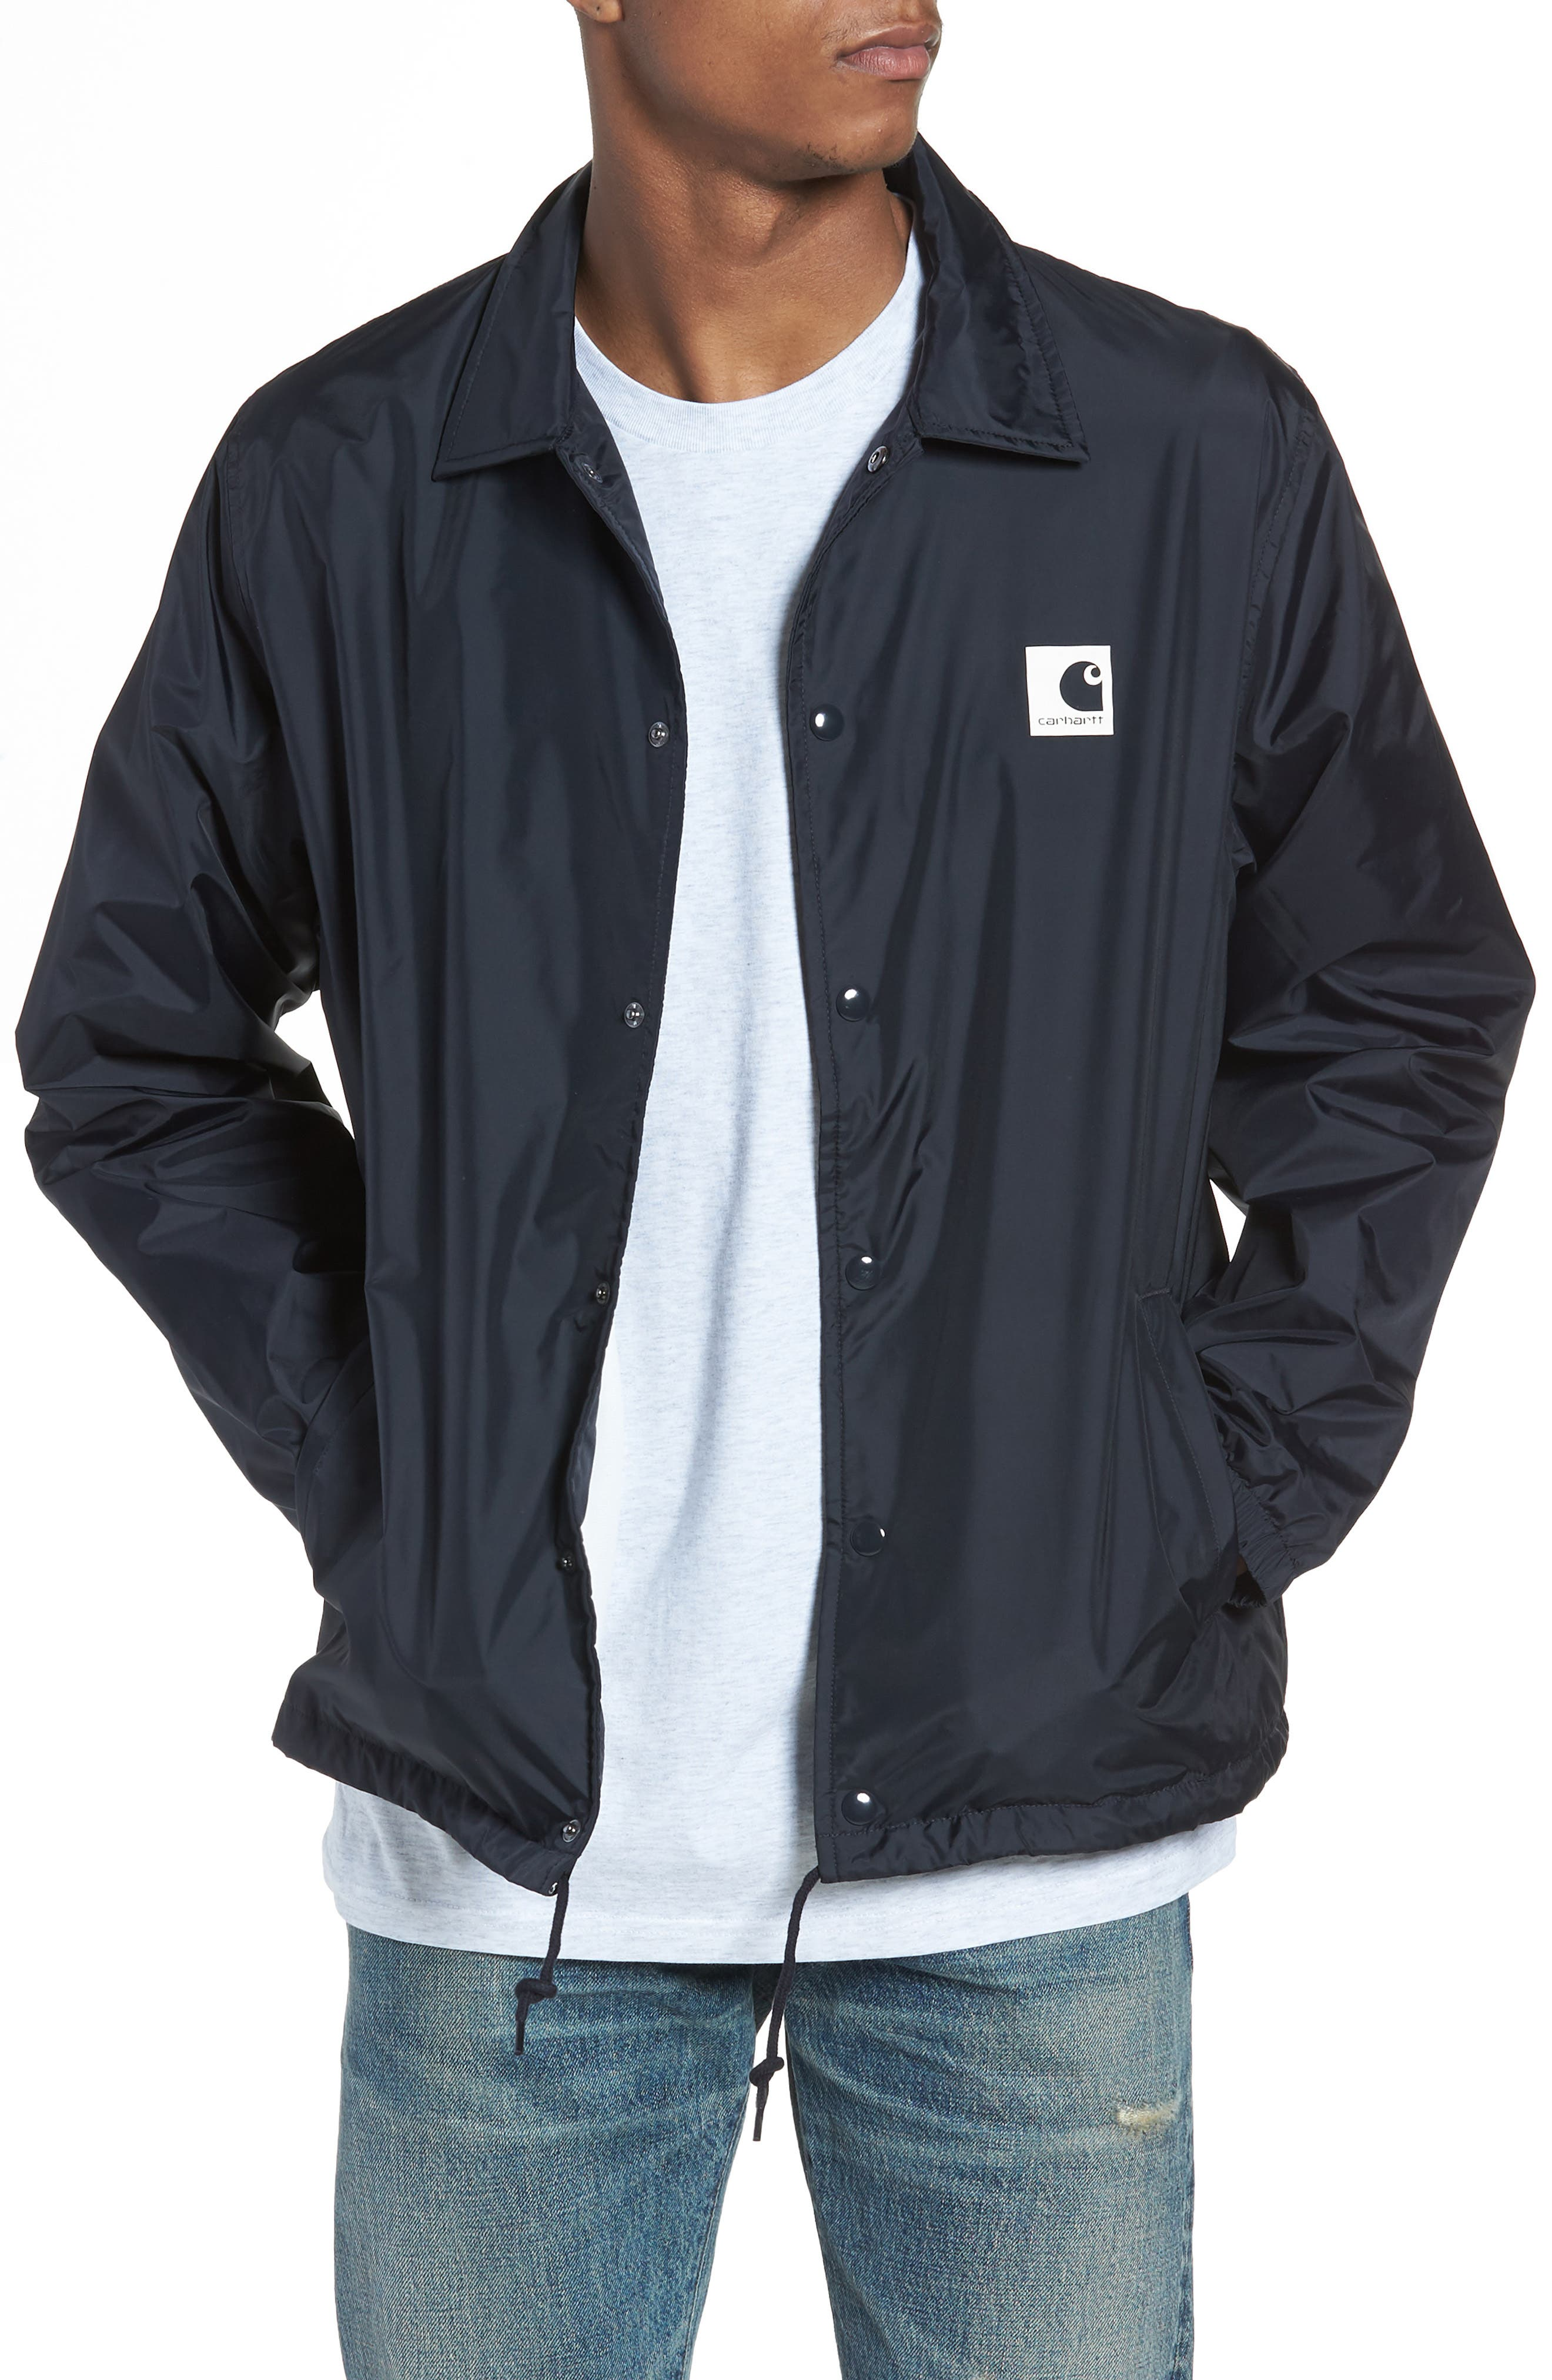 Sport Coach's Jacket,                         Main,                         color,